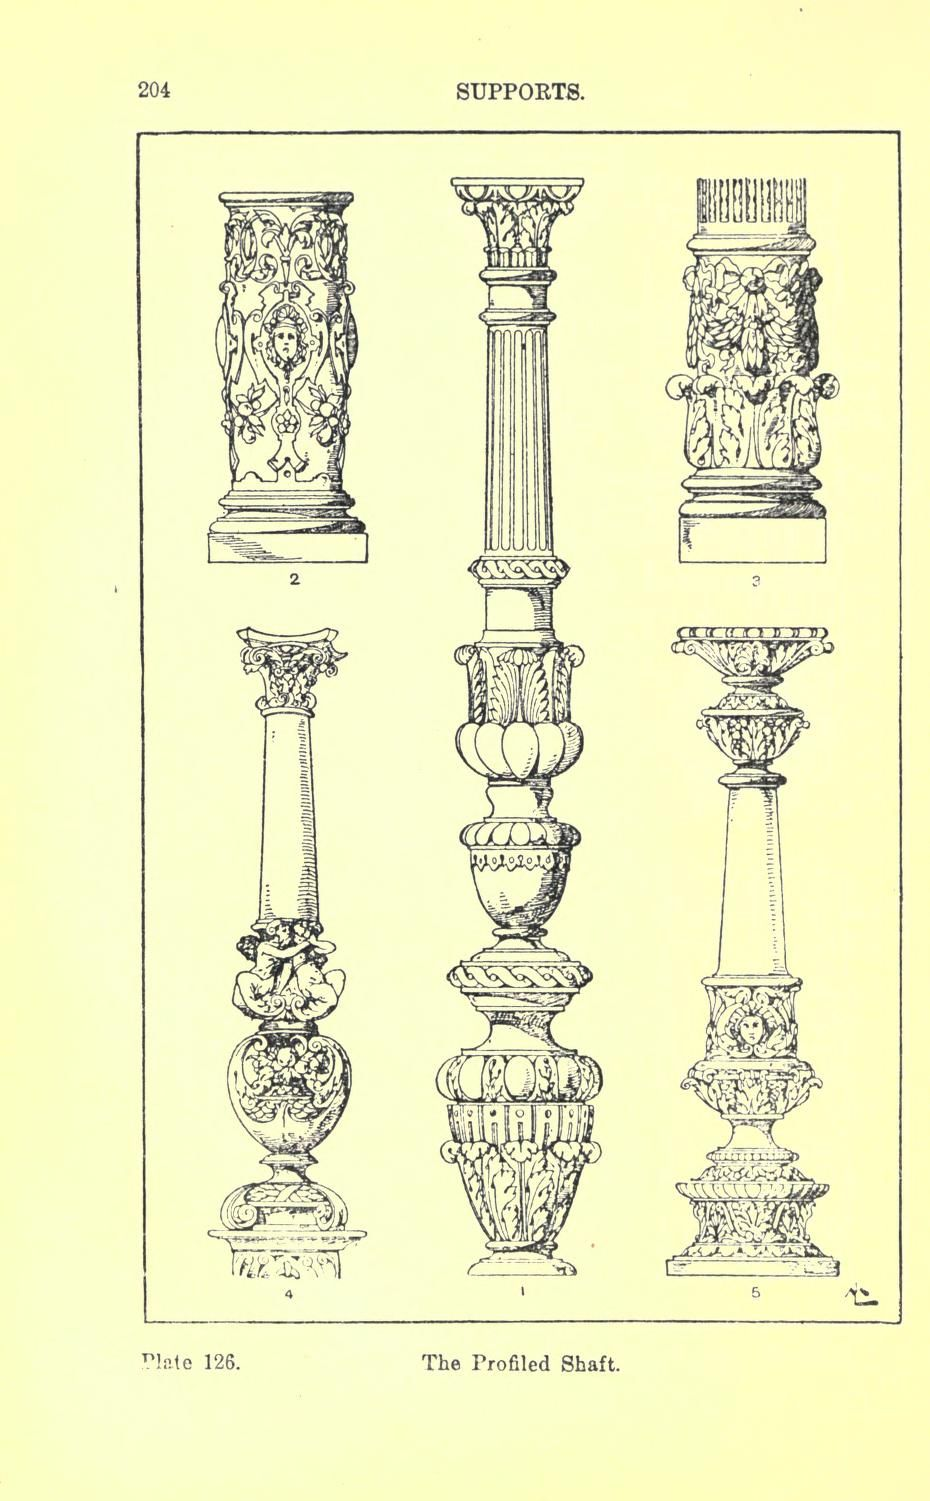 Handbook Of Ornaments Architectural Supports Columns Architecture Drawing Ornament Drawing Historical Architecture